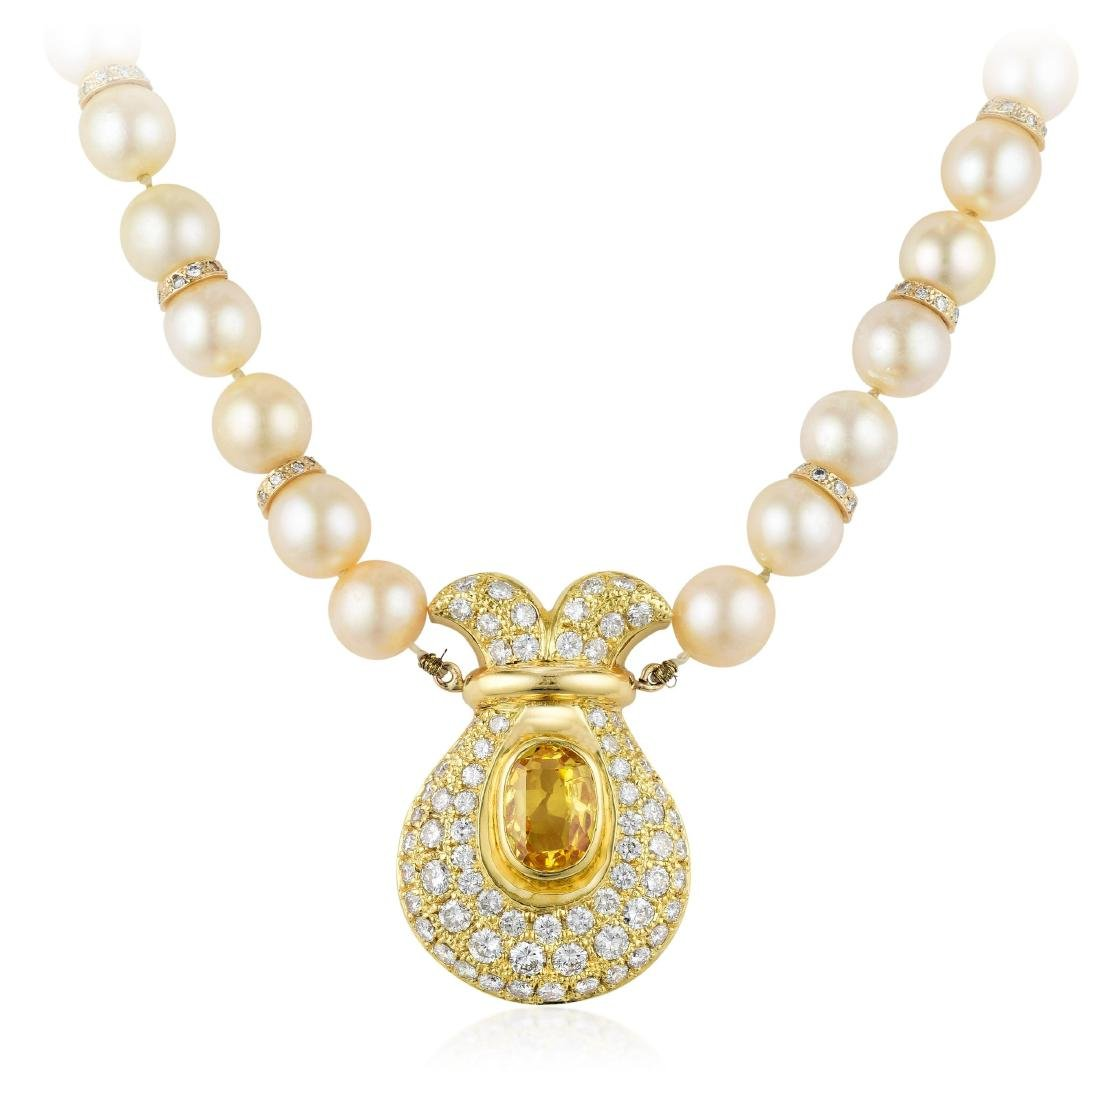 A Yellow Sapphire Diamond and Pearl Necklace